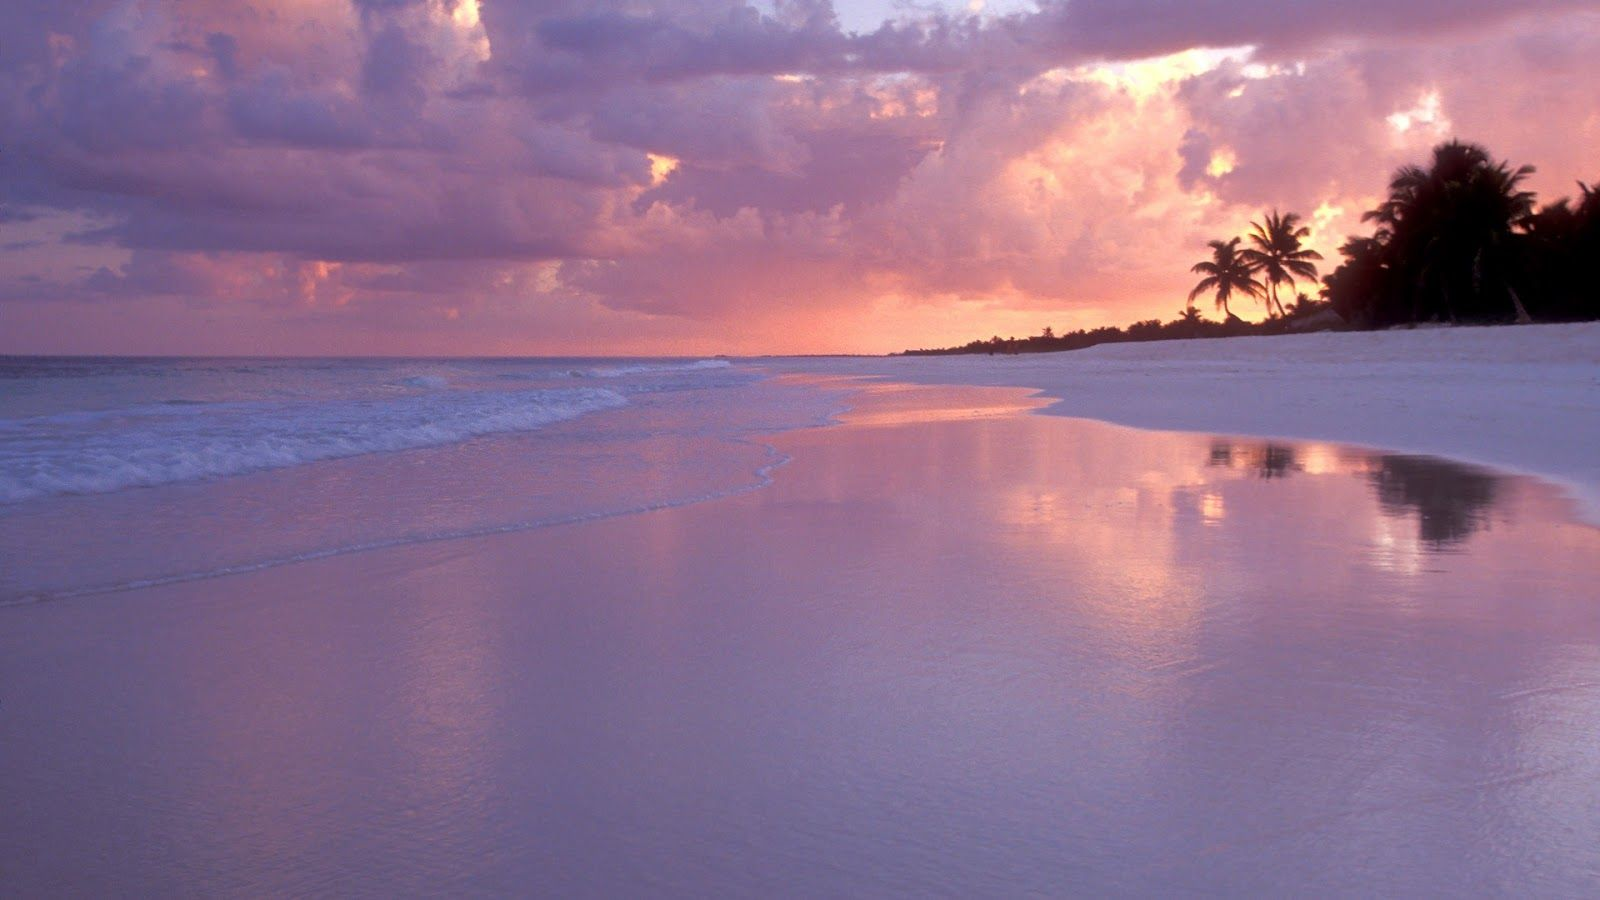 Colorful Beach Sunset In Cancun Mexico Wallpaper Cancun Beach Cancun Beaches Vacation Spots Beautiful Beaches